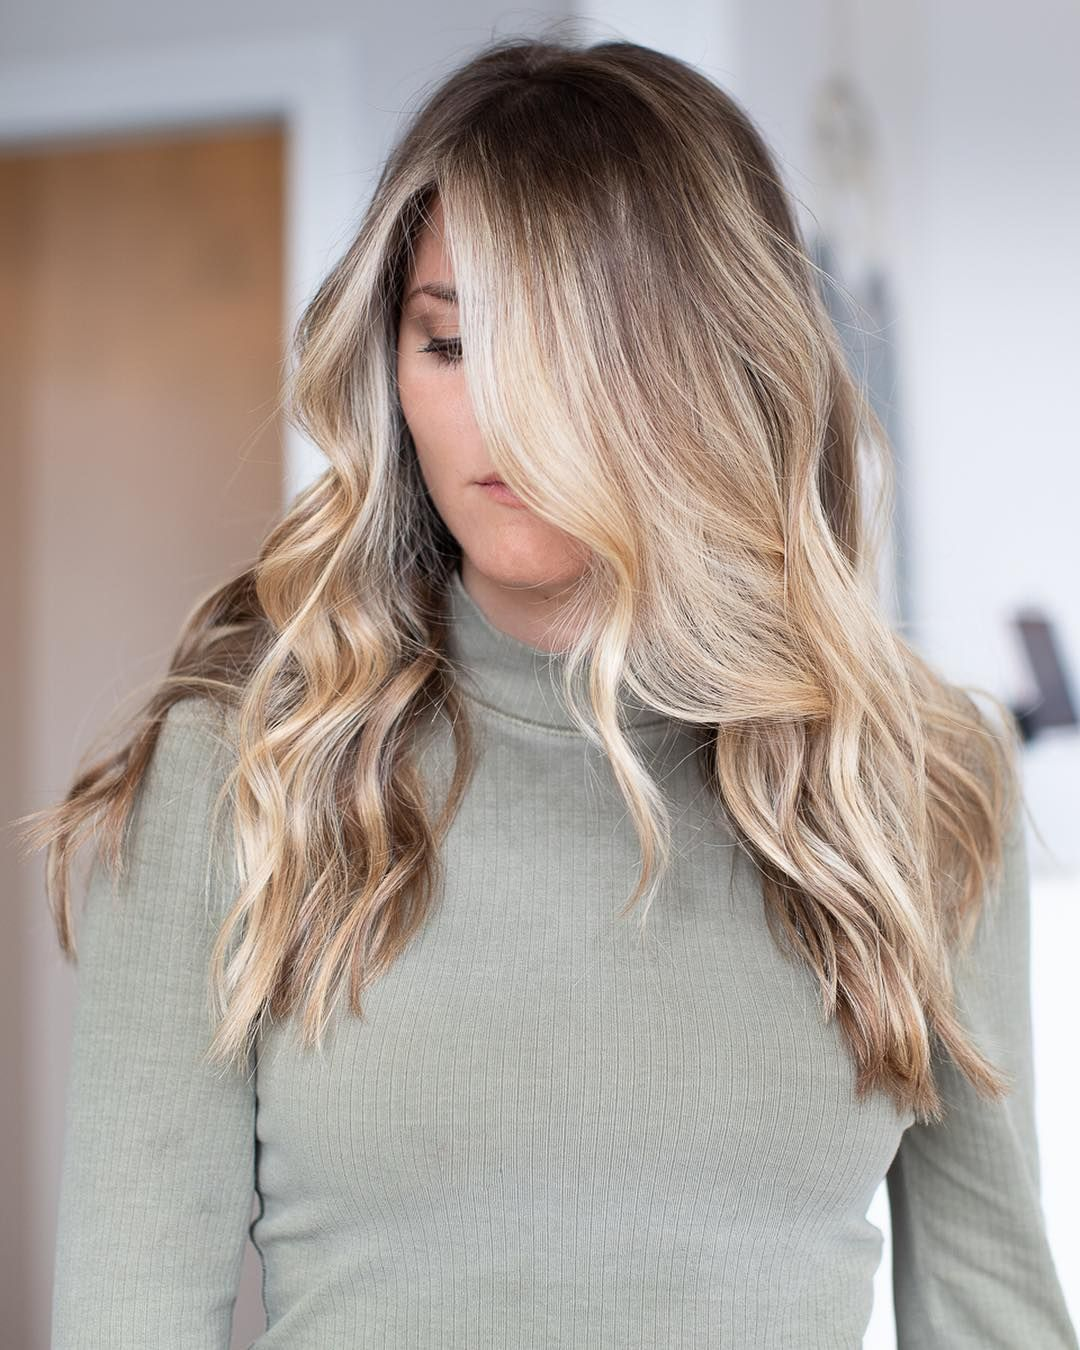 "Laci | atlanta balayage on Instagram: ""💫S U N K I S S E D 💫 With soft layers… Love a purposeful rooty look. I painted her highlites, while keeping her natural root color using…"""